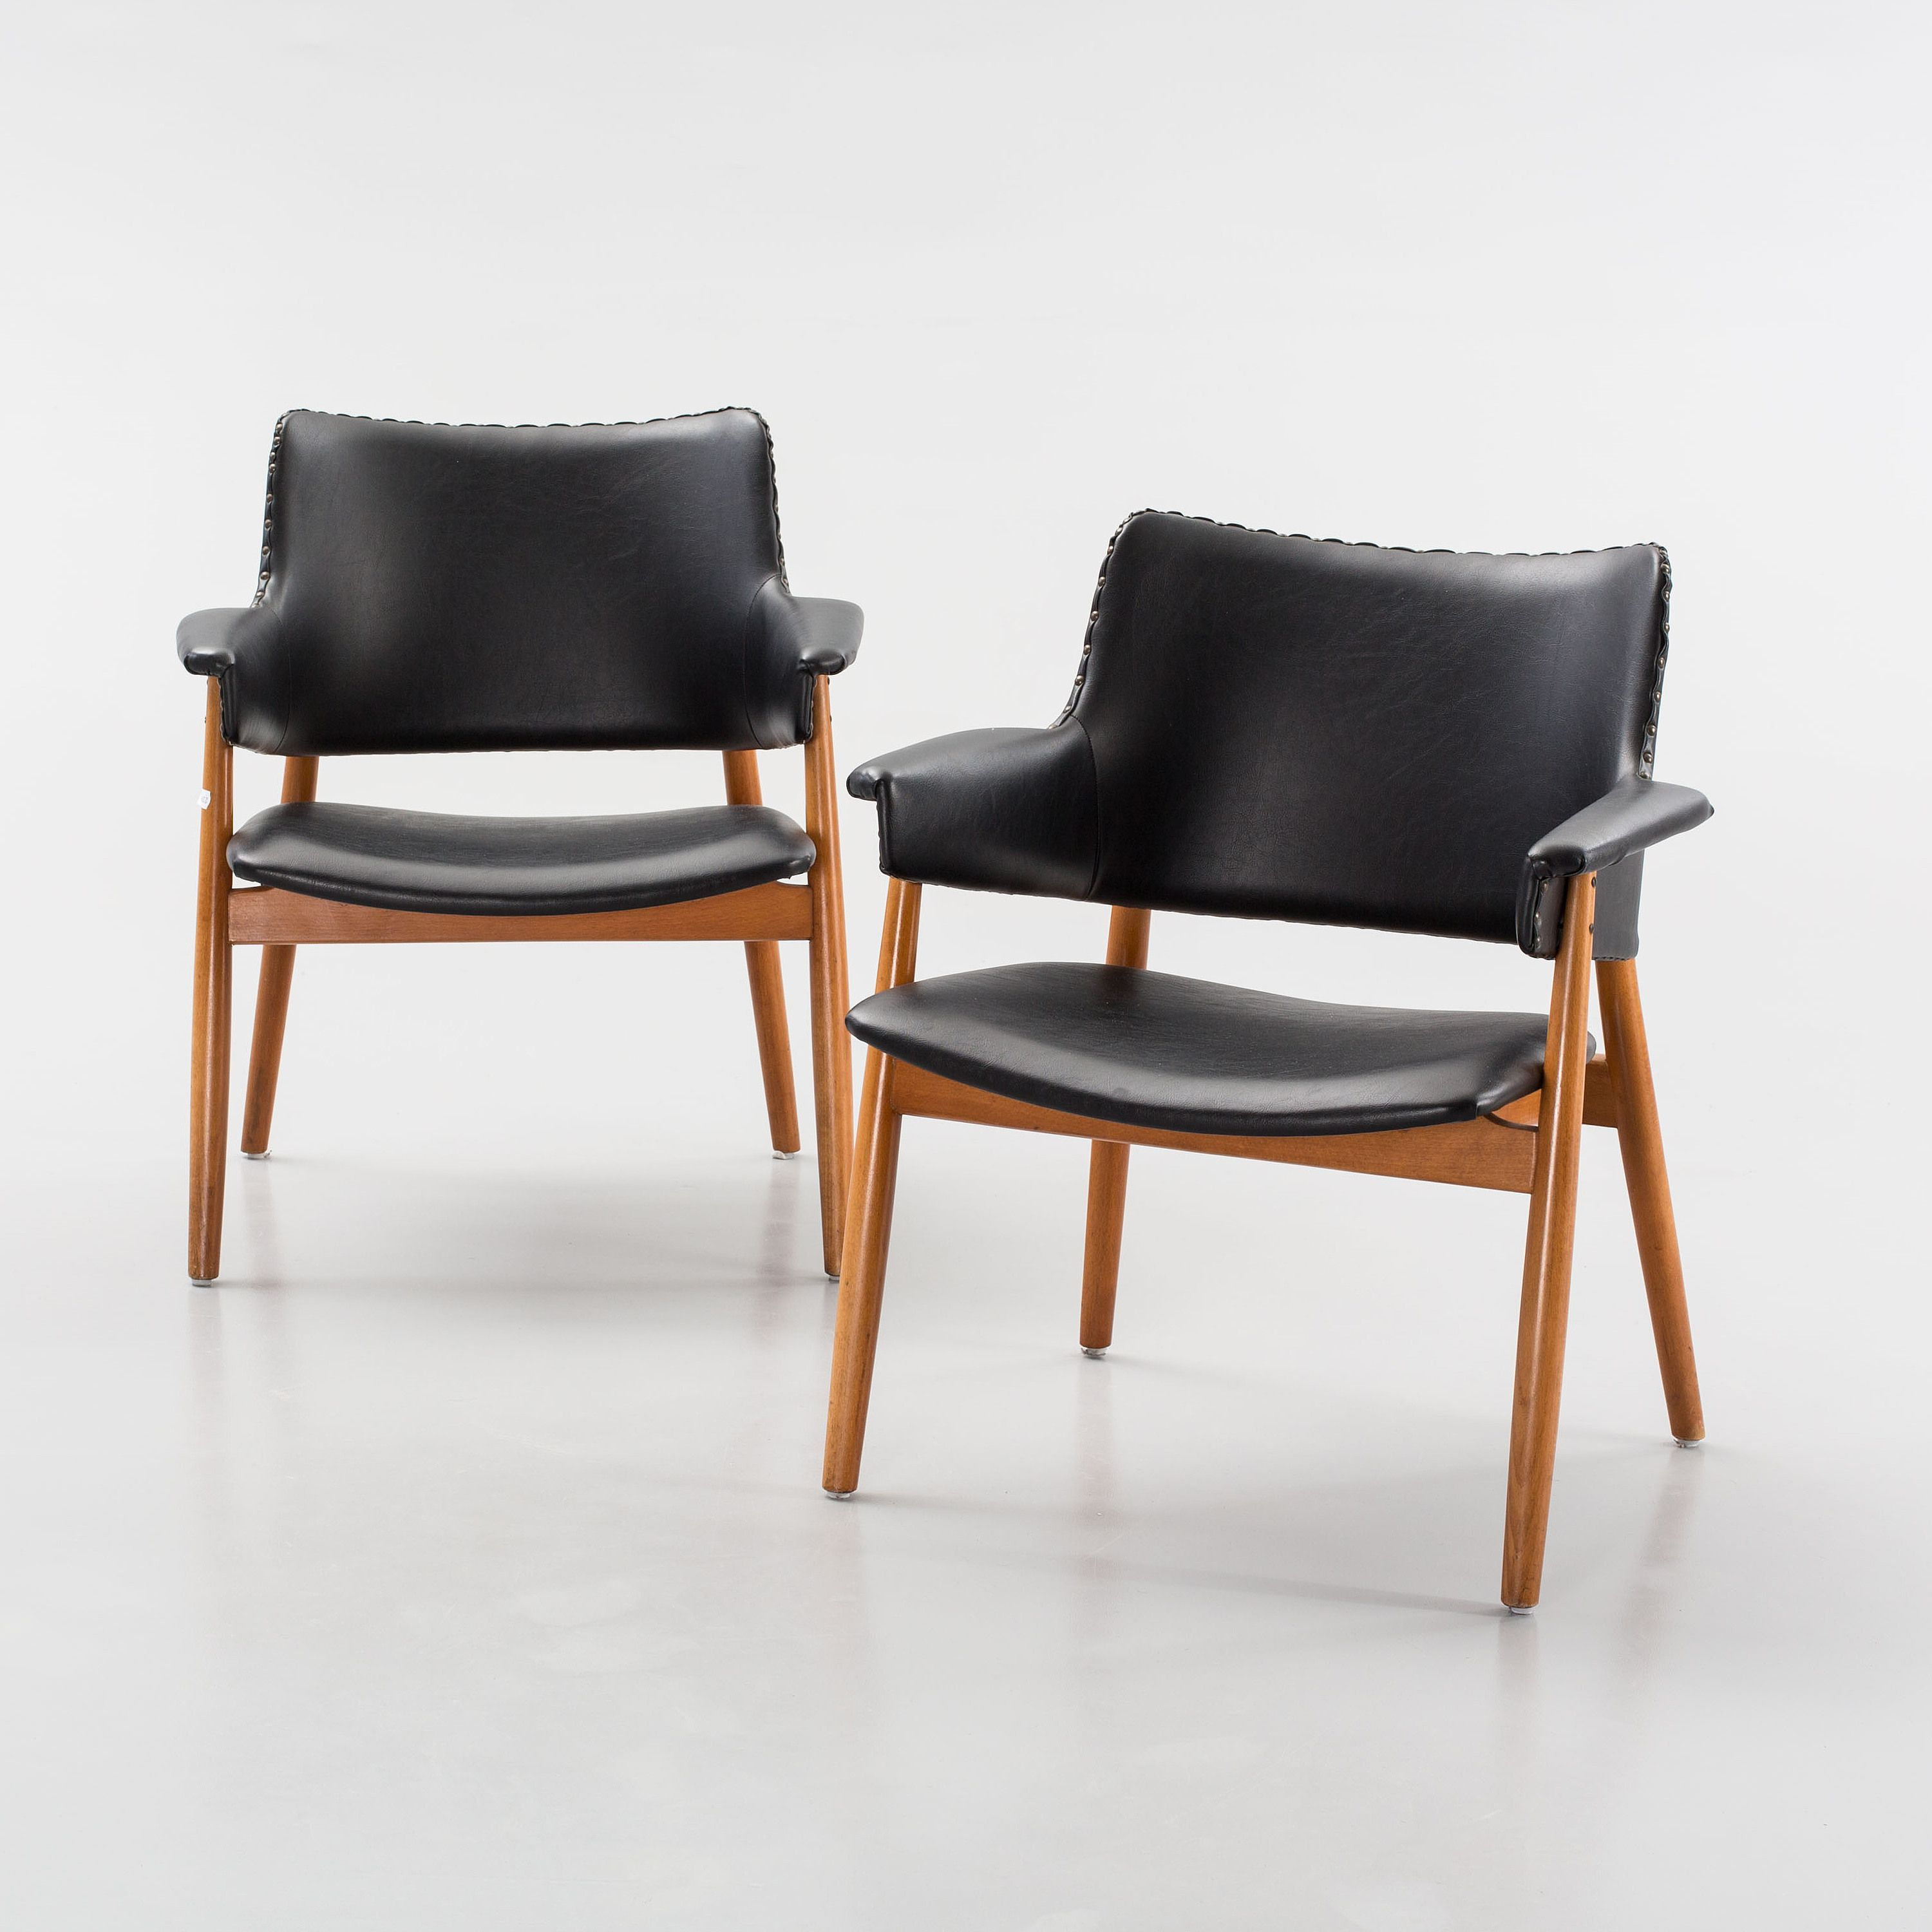 Erik Wörtz; Chairs For IKEA, 1964.